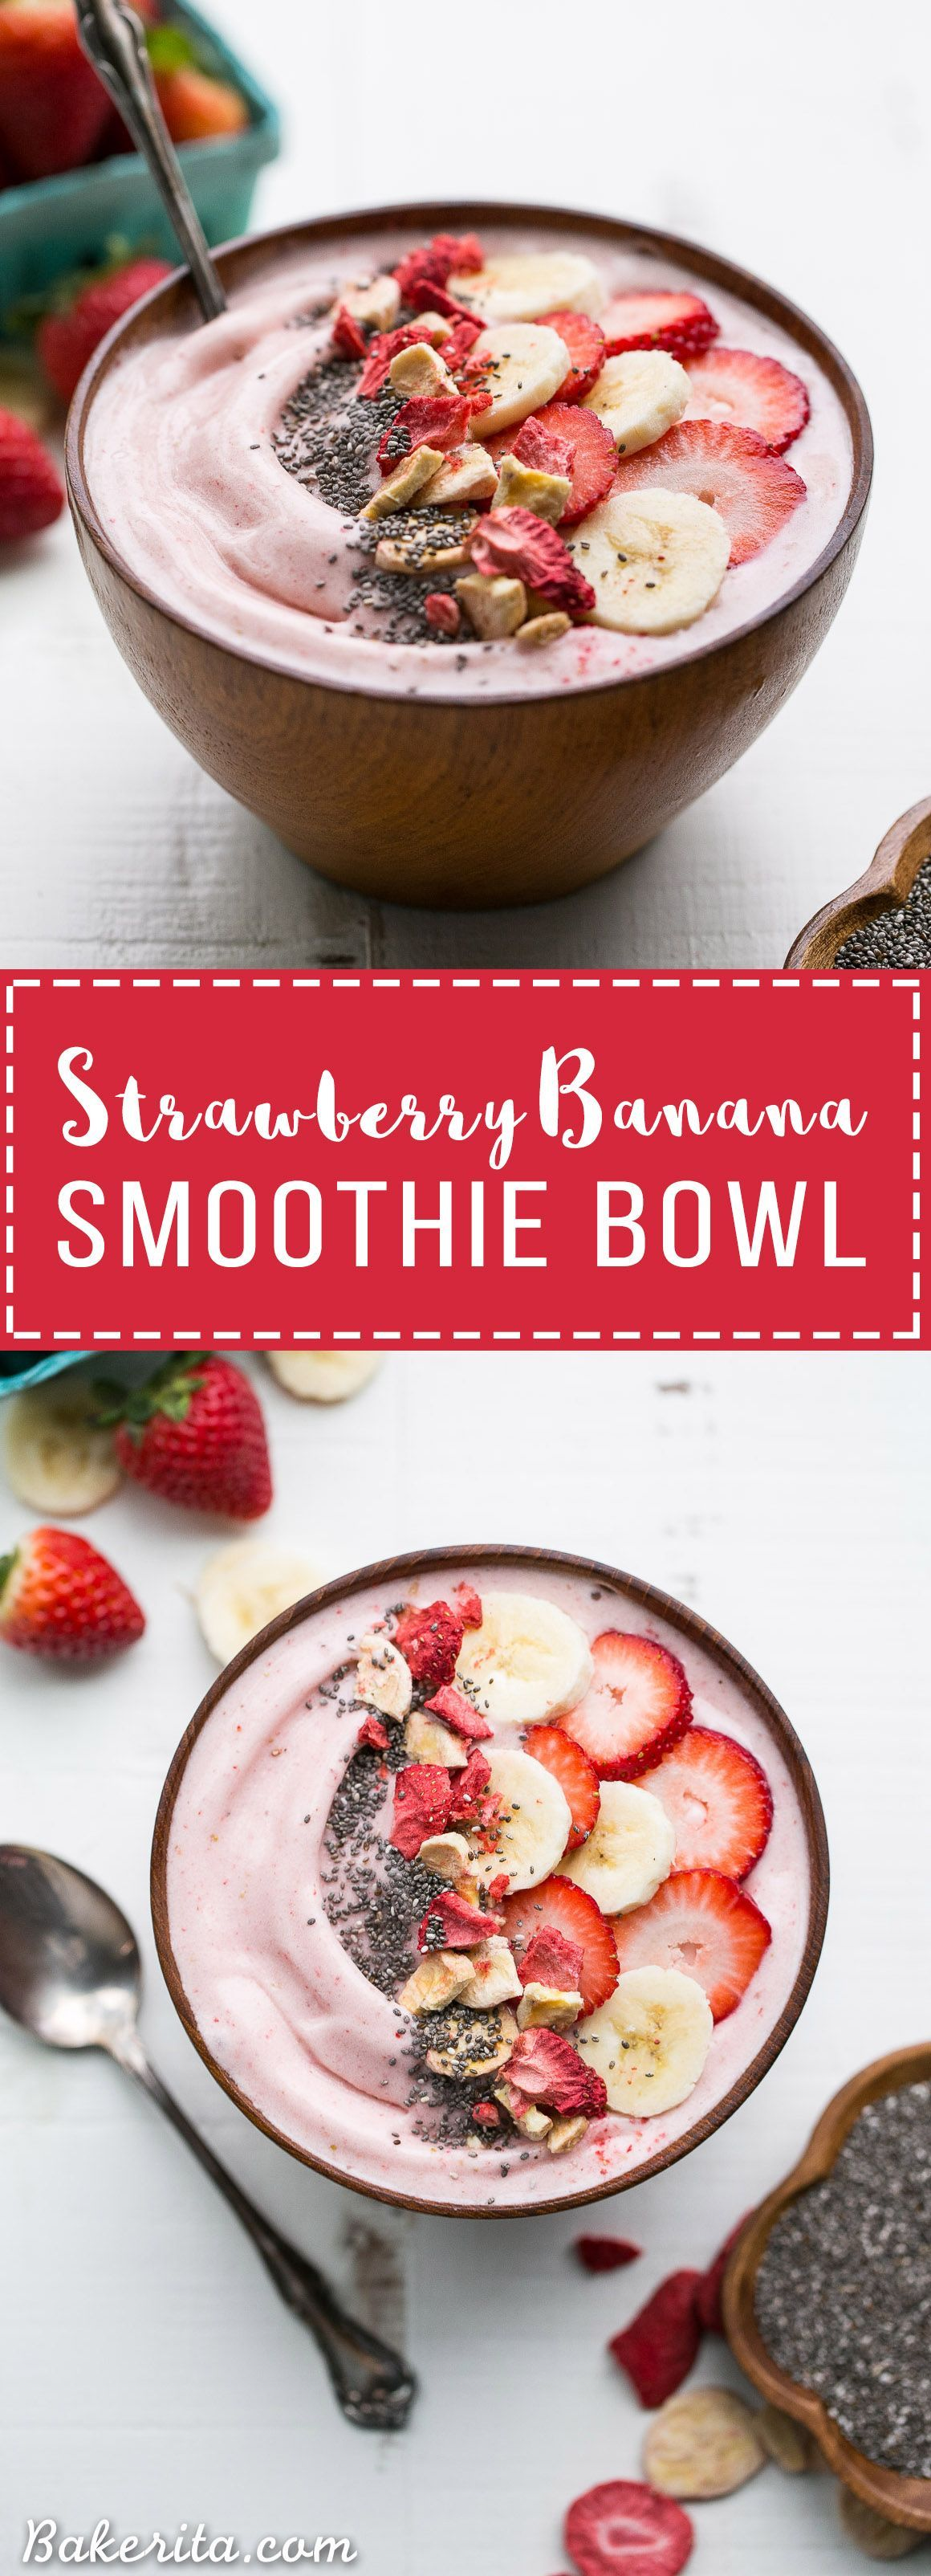 This easy Strawberry Banana Smoothie Bowl is a simple and sweet treat! It's a healthy Paleo + vegan breakfast or snack made with only a few ingredients, and you can add whichever toppings your heart desires to customize to your tastes. @lovemysilk easy Strawberry Banana Smoothie Bowl is a simple and sweet treat! It's a healthy Paleo + vegan breakfast or snack made with only a few ingredients, and you can add whichever toppings your heart desires to customize to your tastes. @lovemysilk